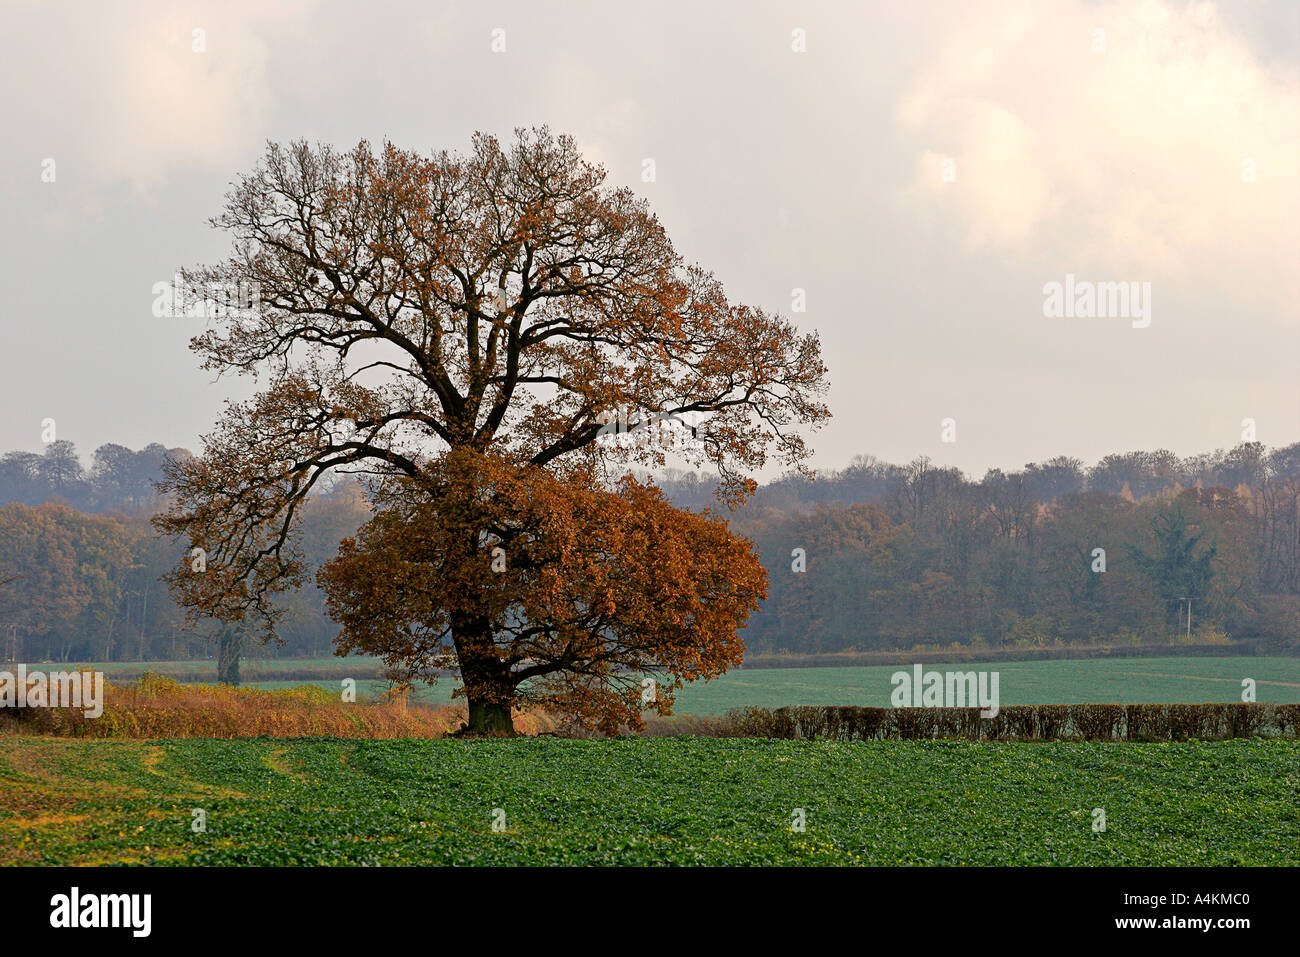 Chiltern Landscape 1 near Great Missenden England UK - Stock Image